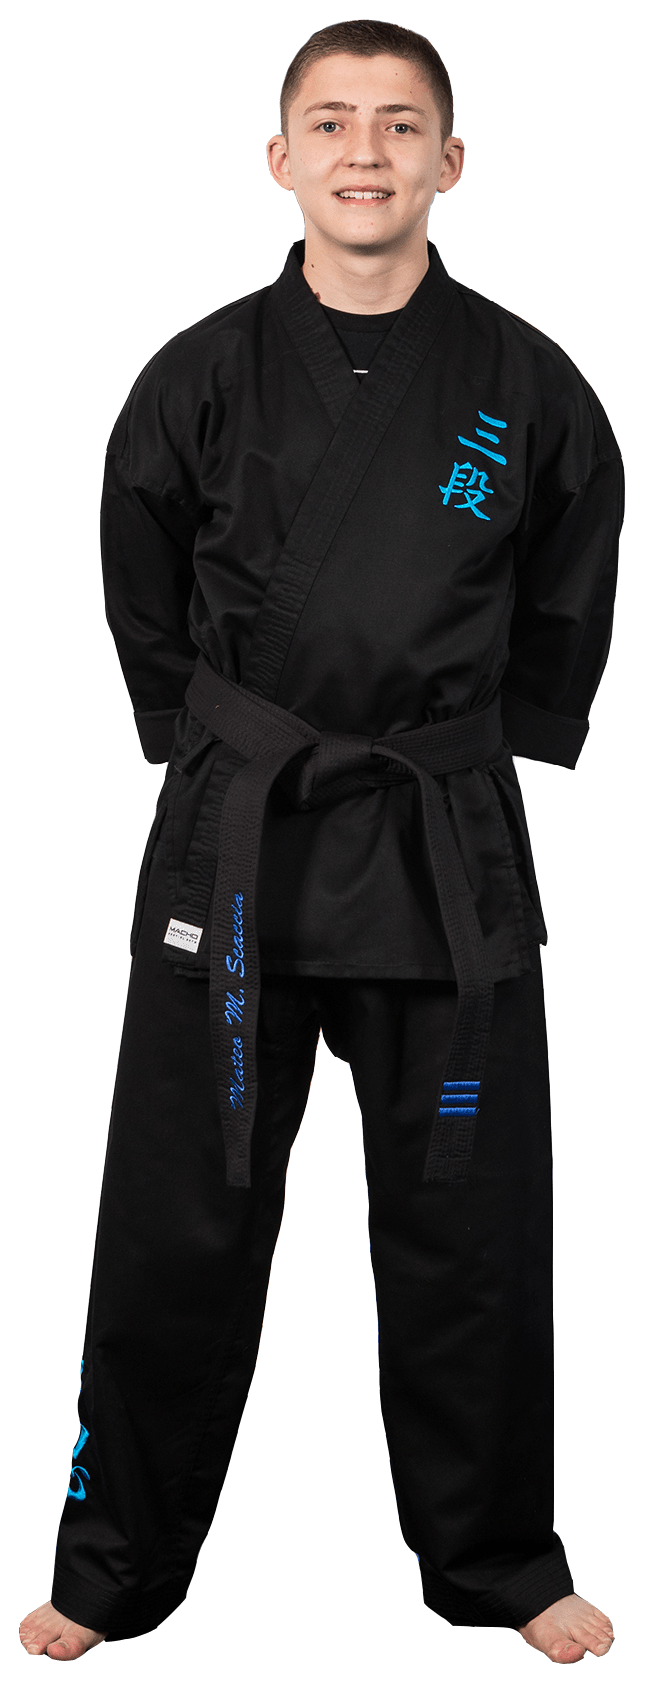 Mateo Scaccia in Coconut Creek - Team Creek Martial Arts